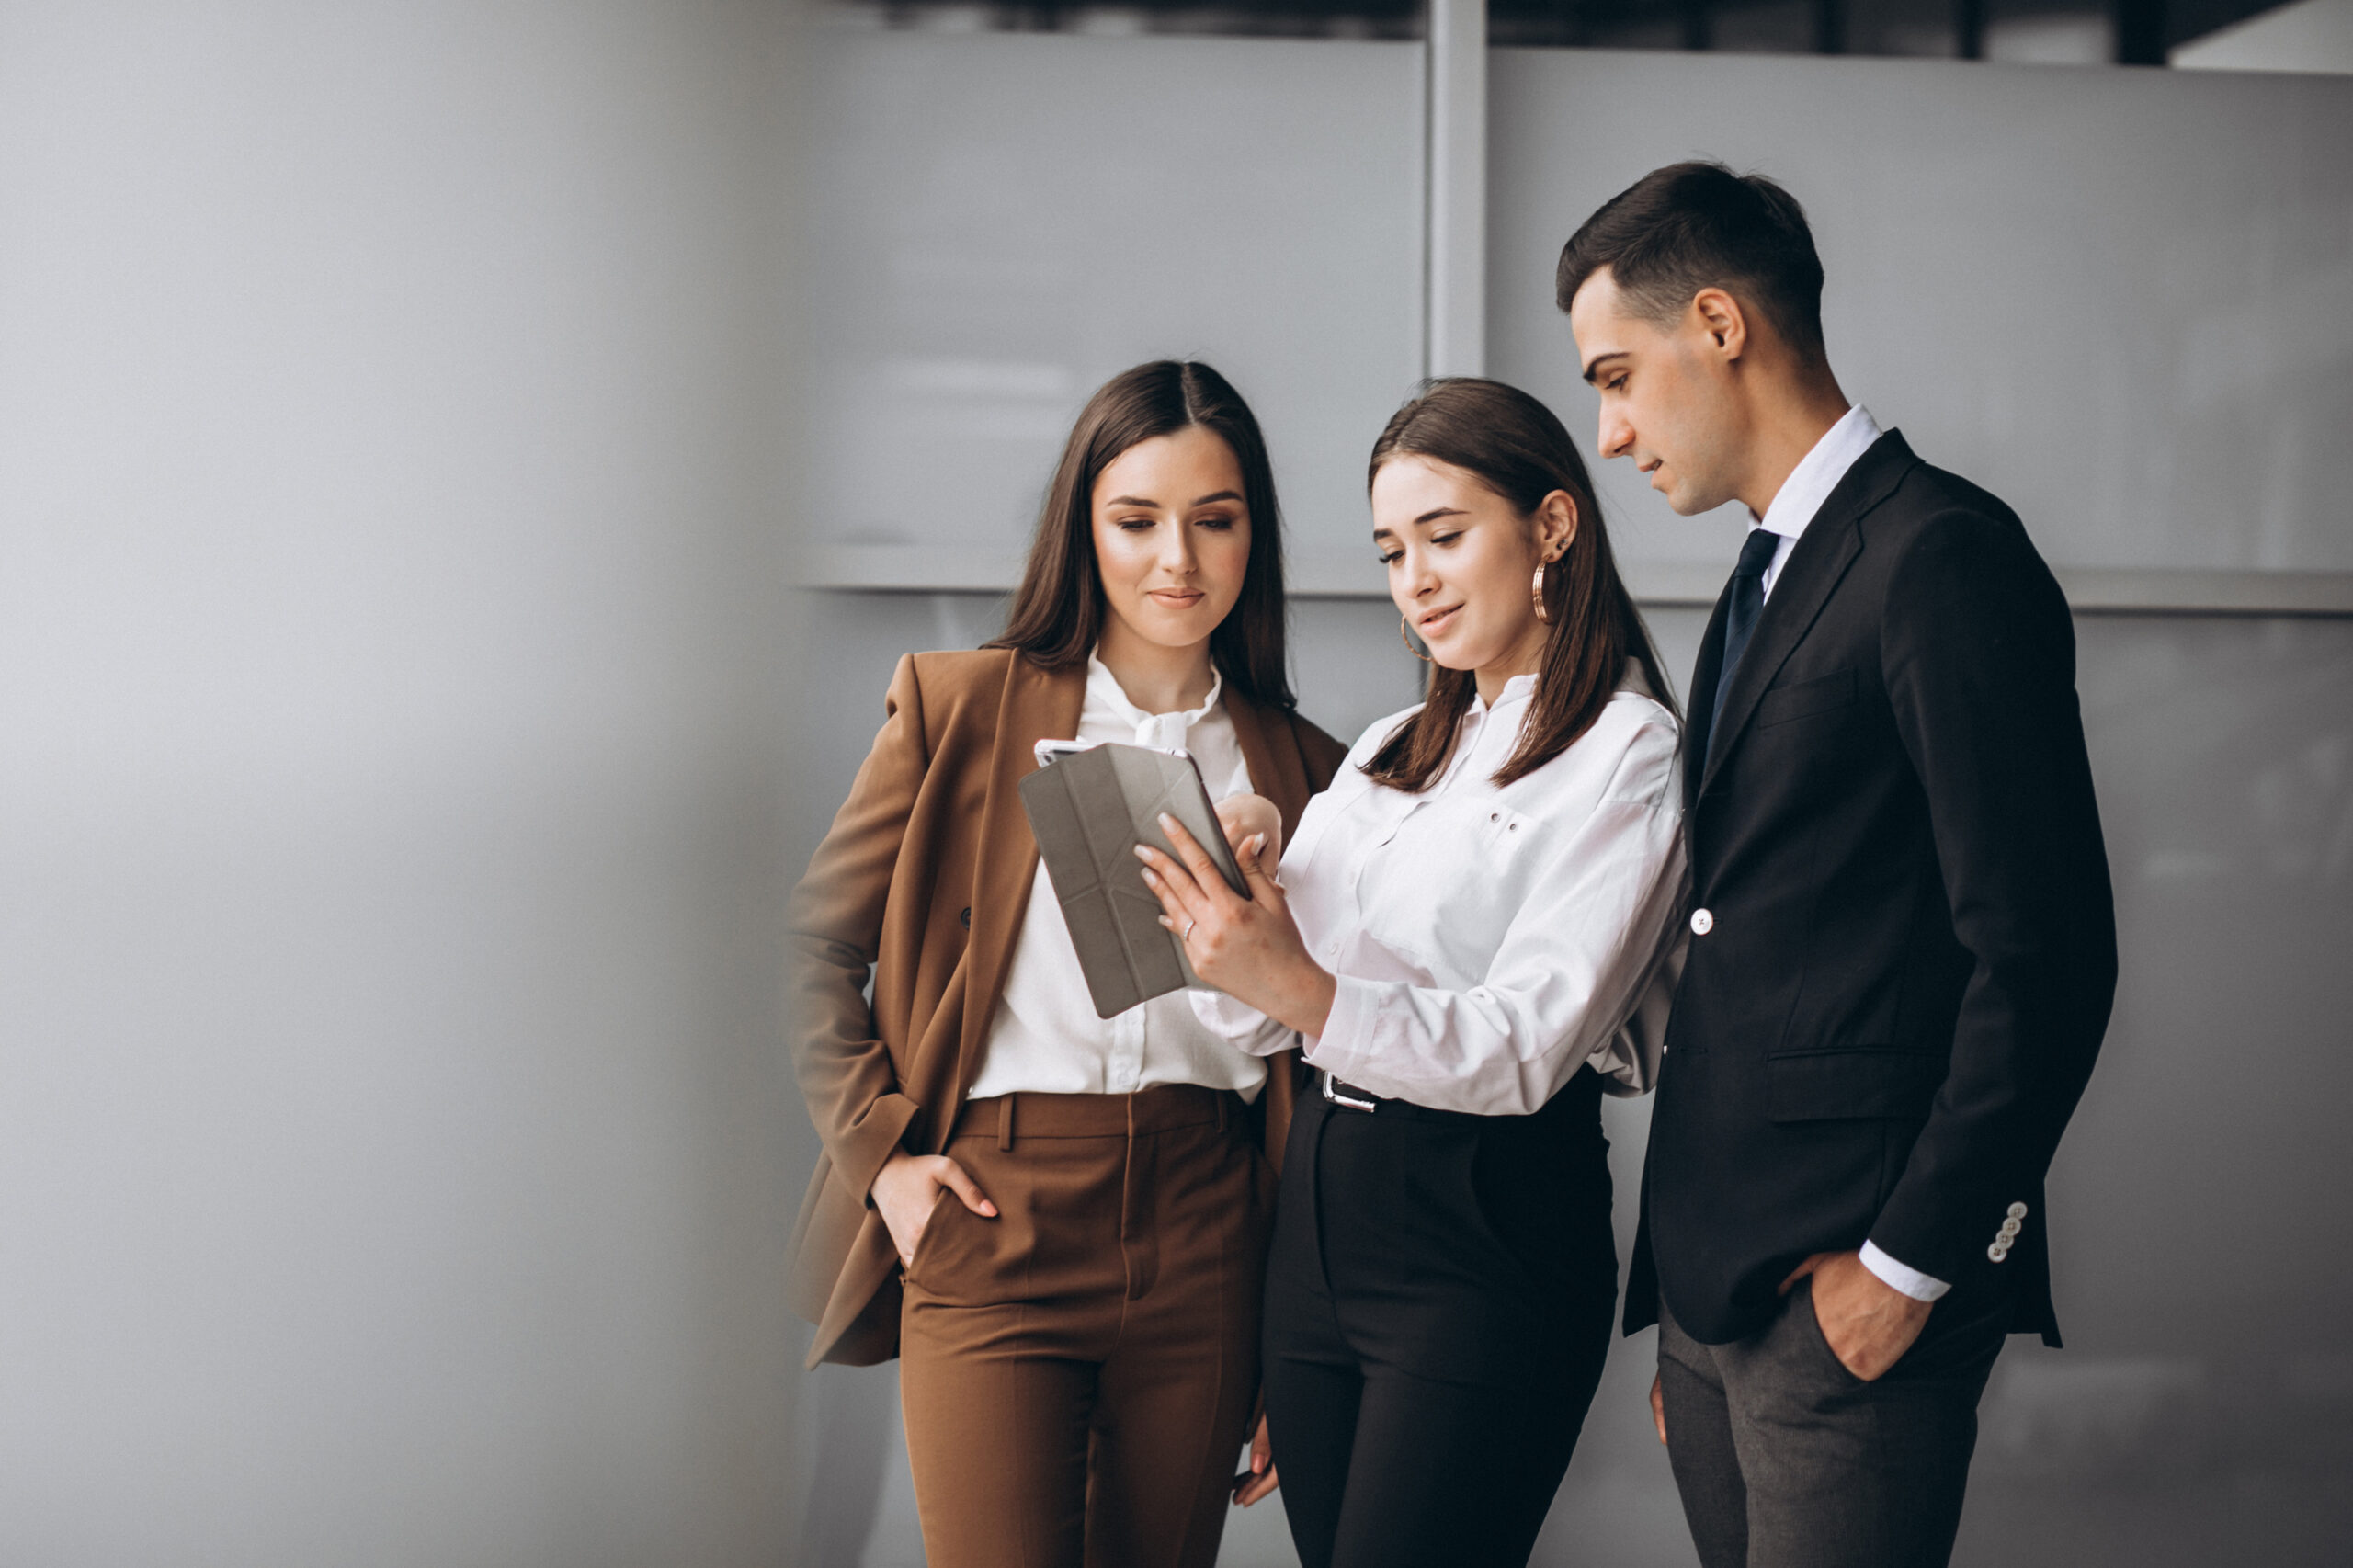 People in formal work attire working together